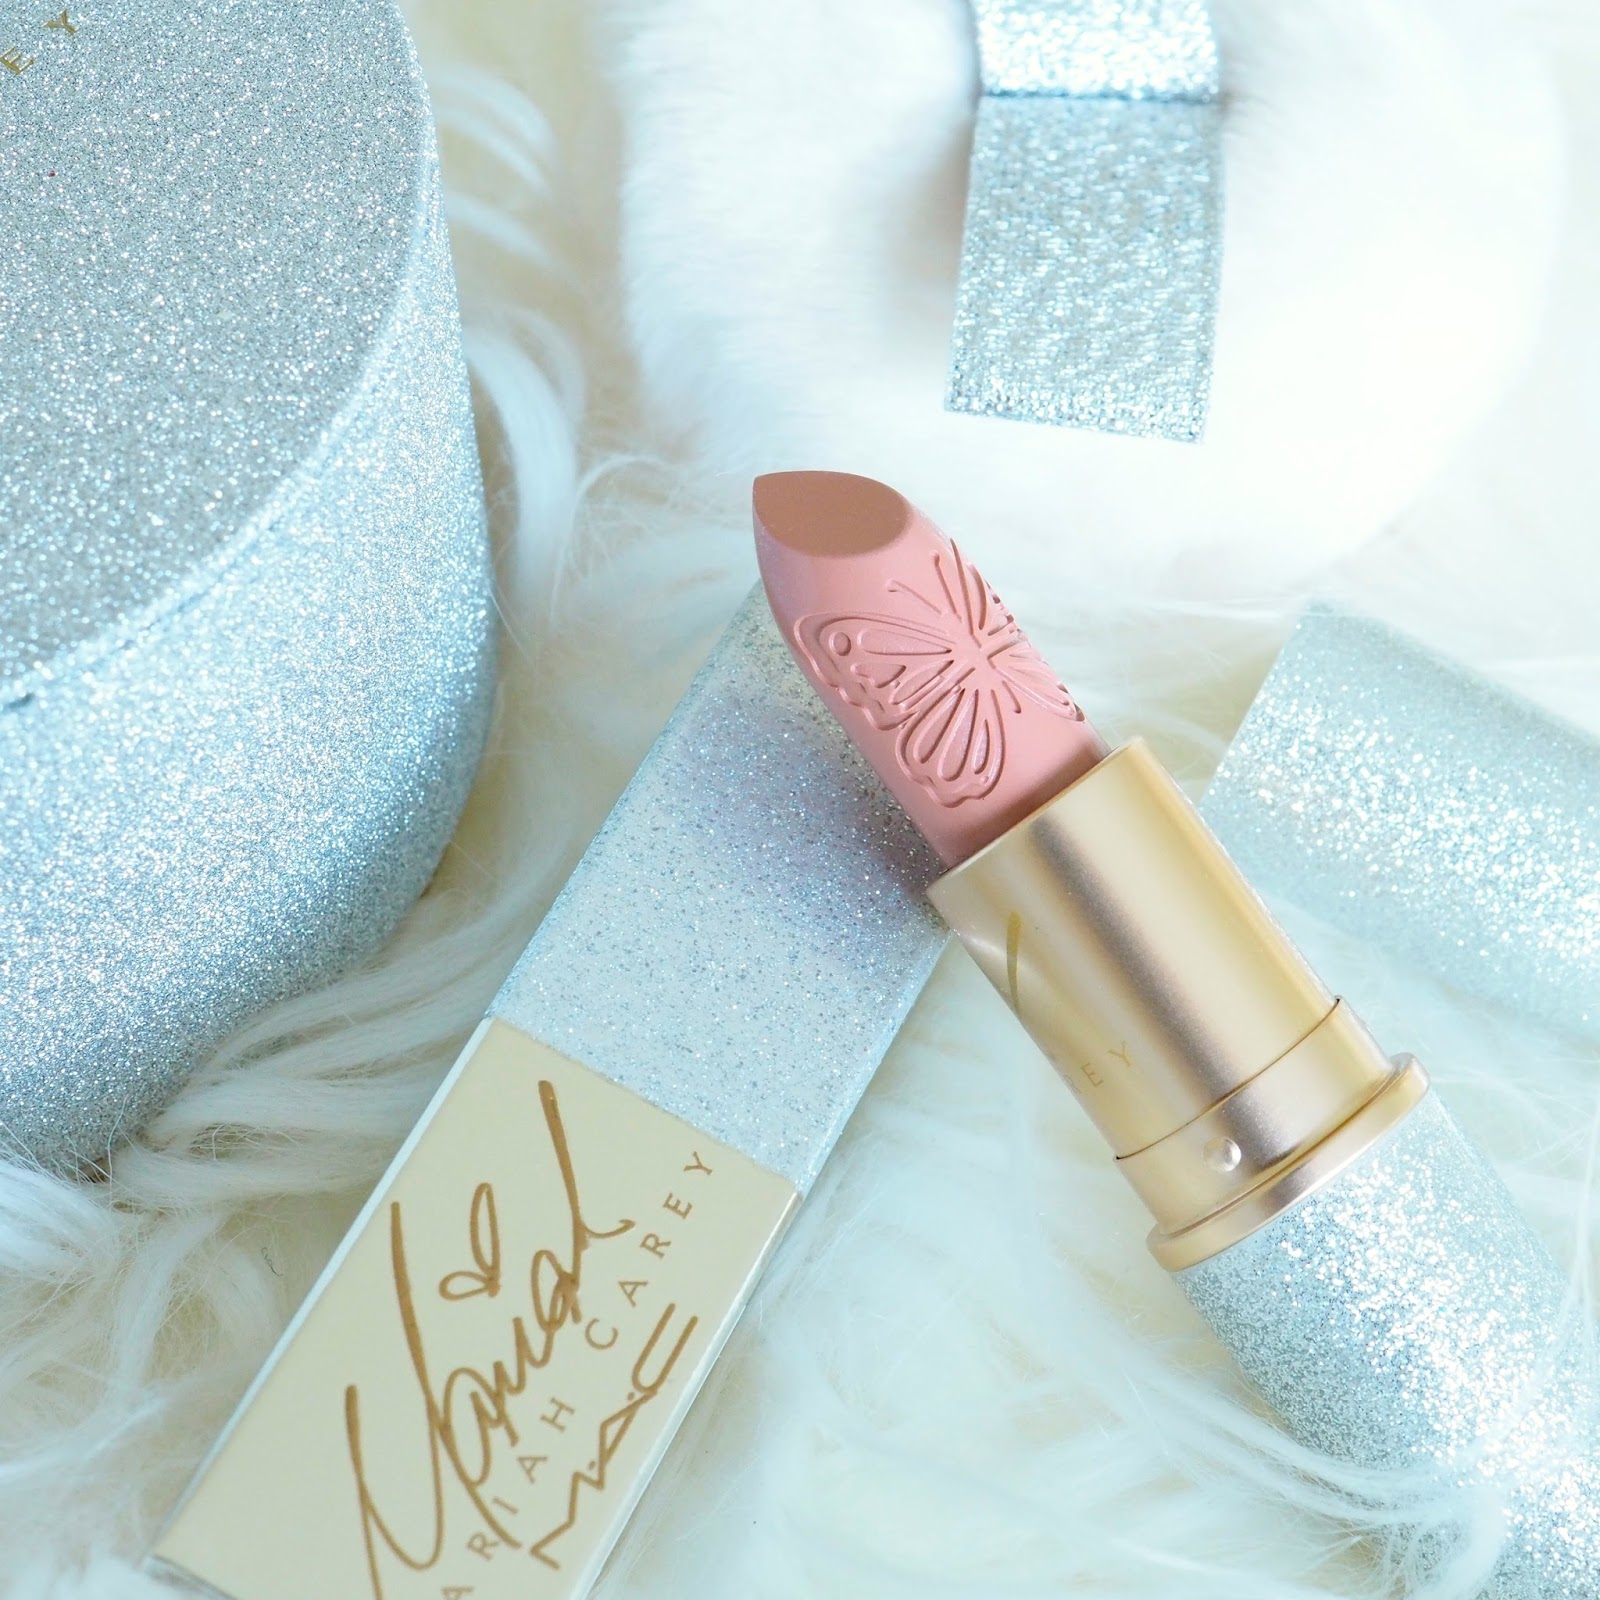 MAC Mariah Carey MCizzle Lipstick & Touch My Body Powder Review & Swatches